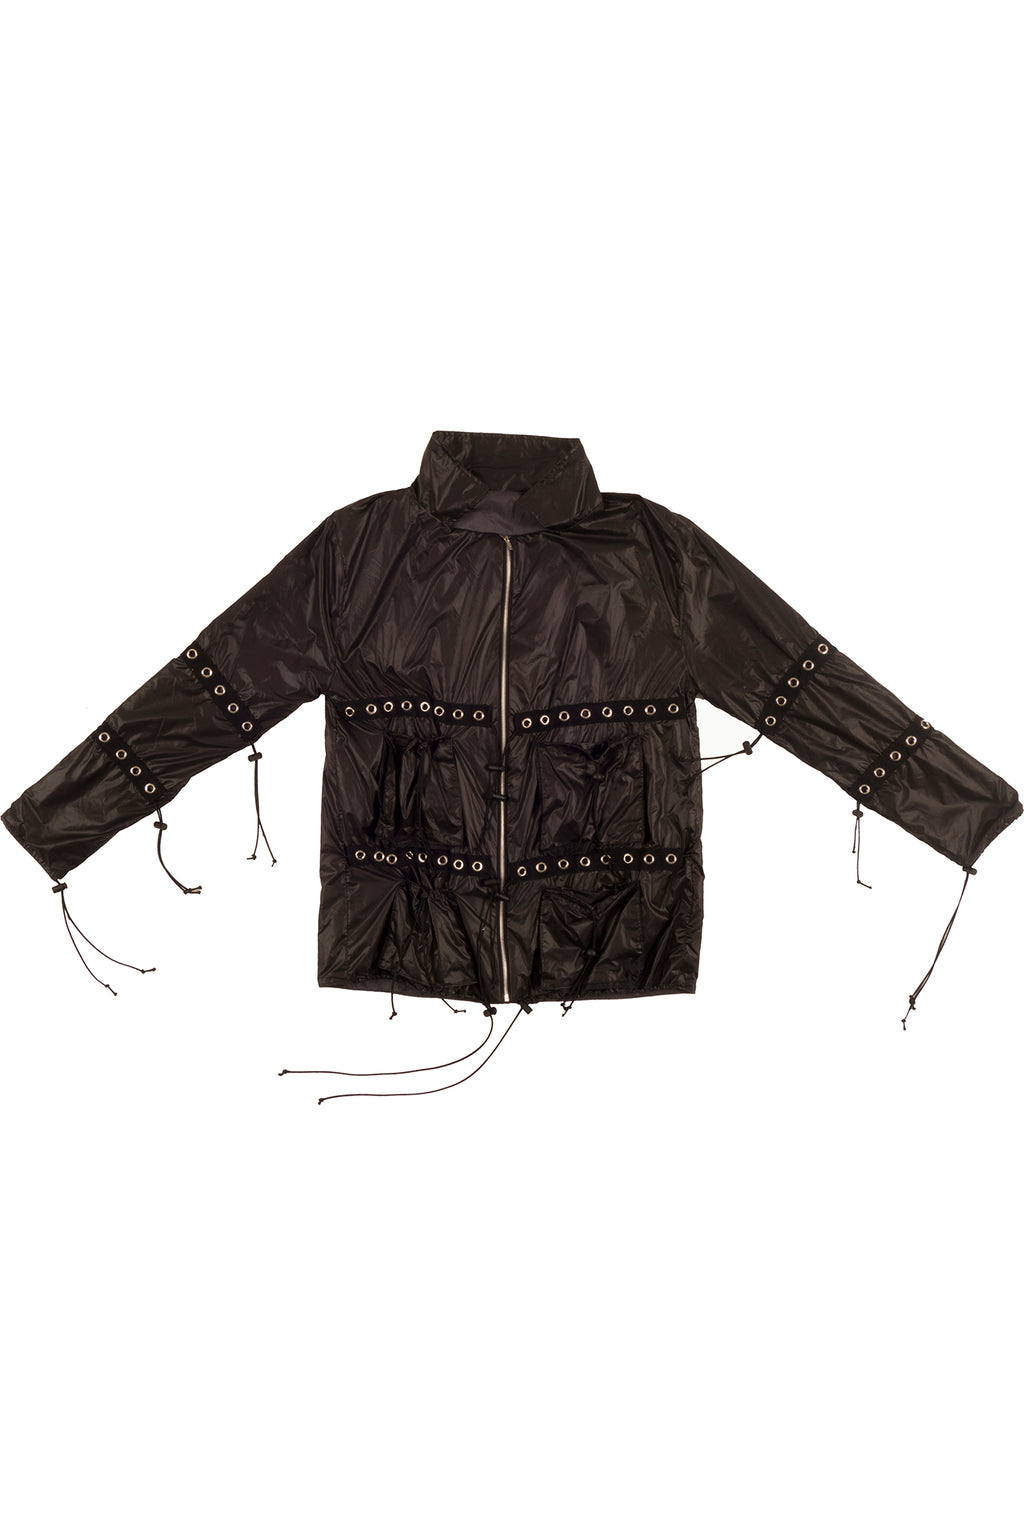 NYLON BUNGEE POCKET JACKET